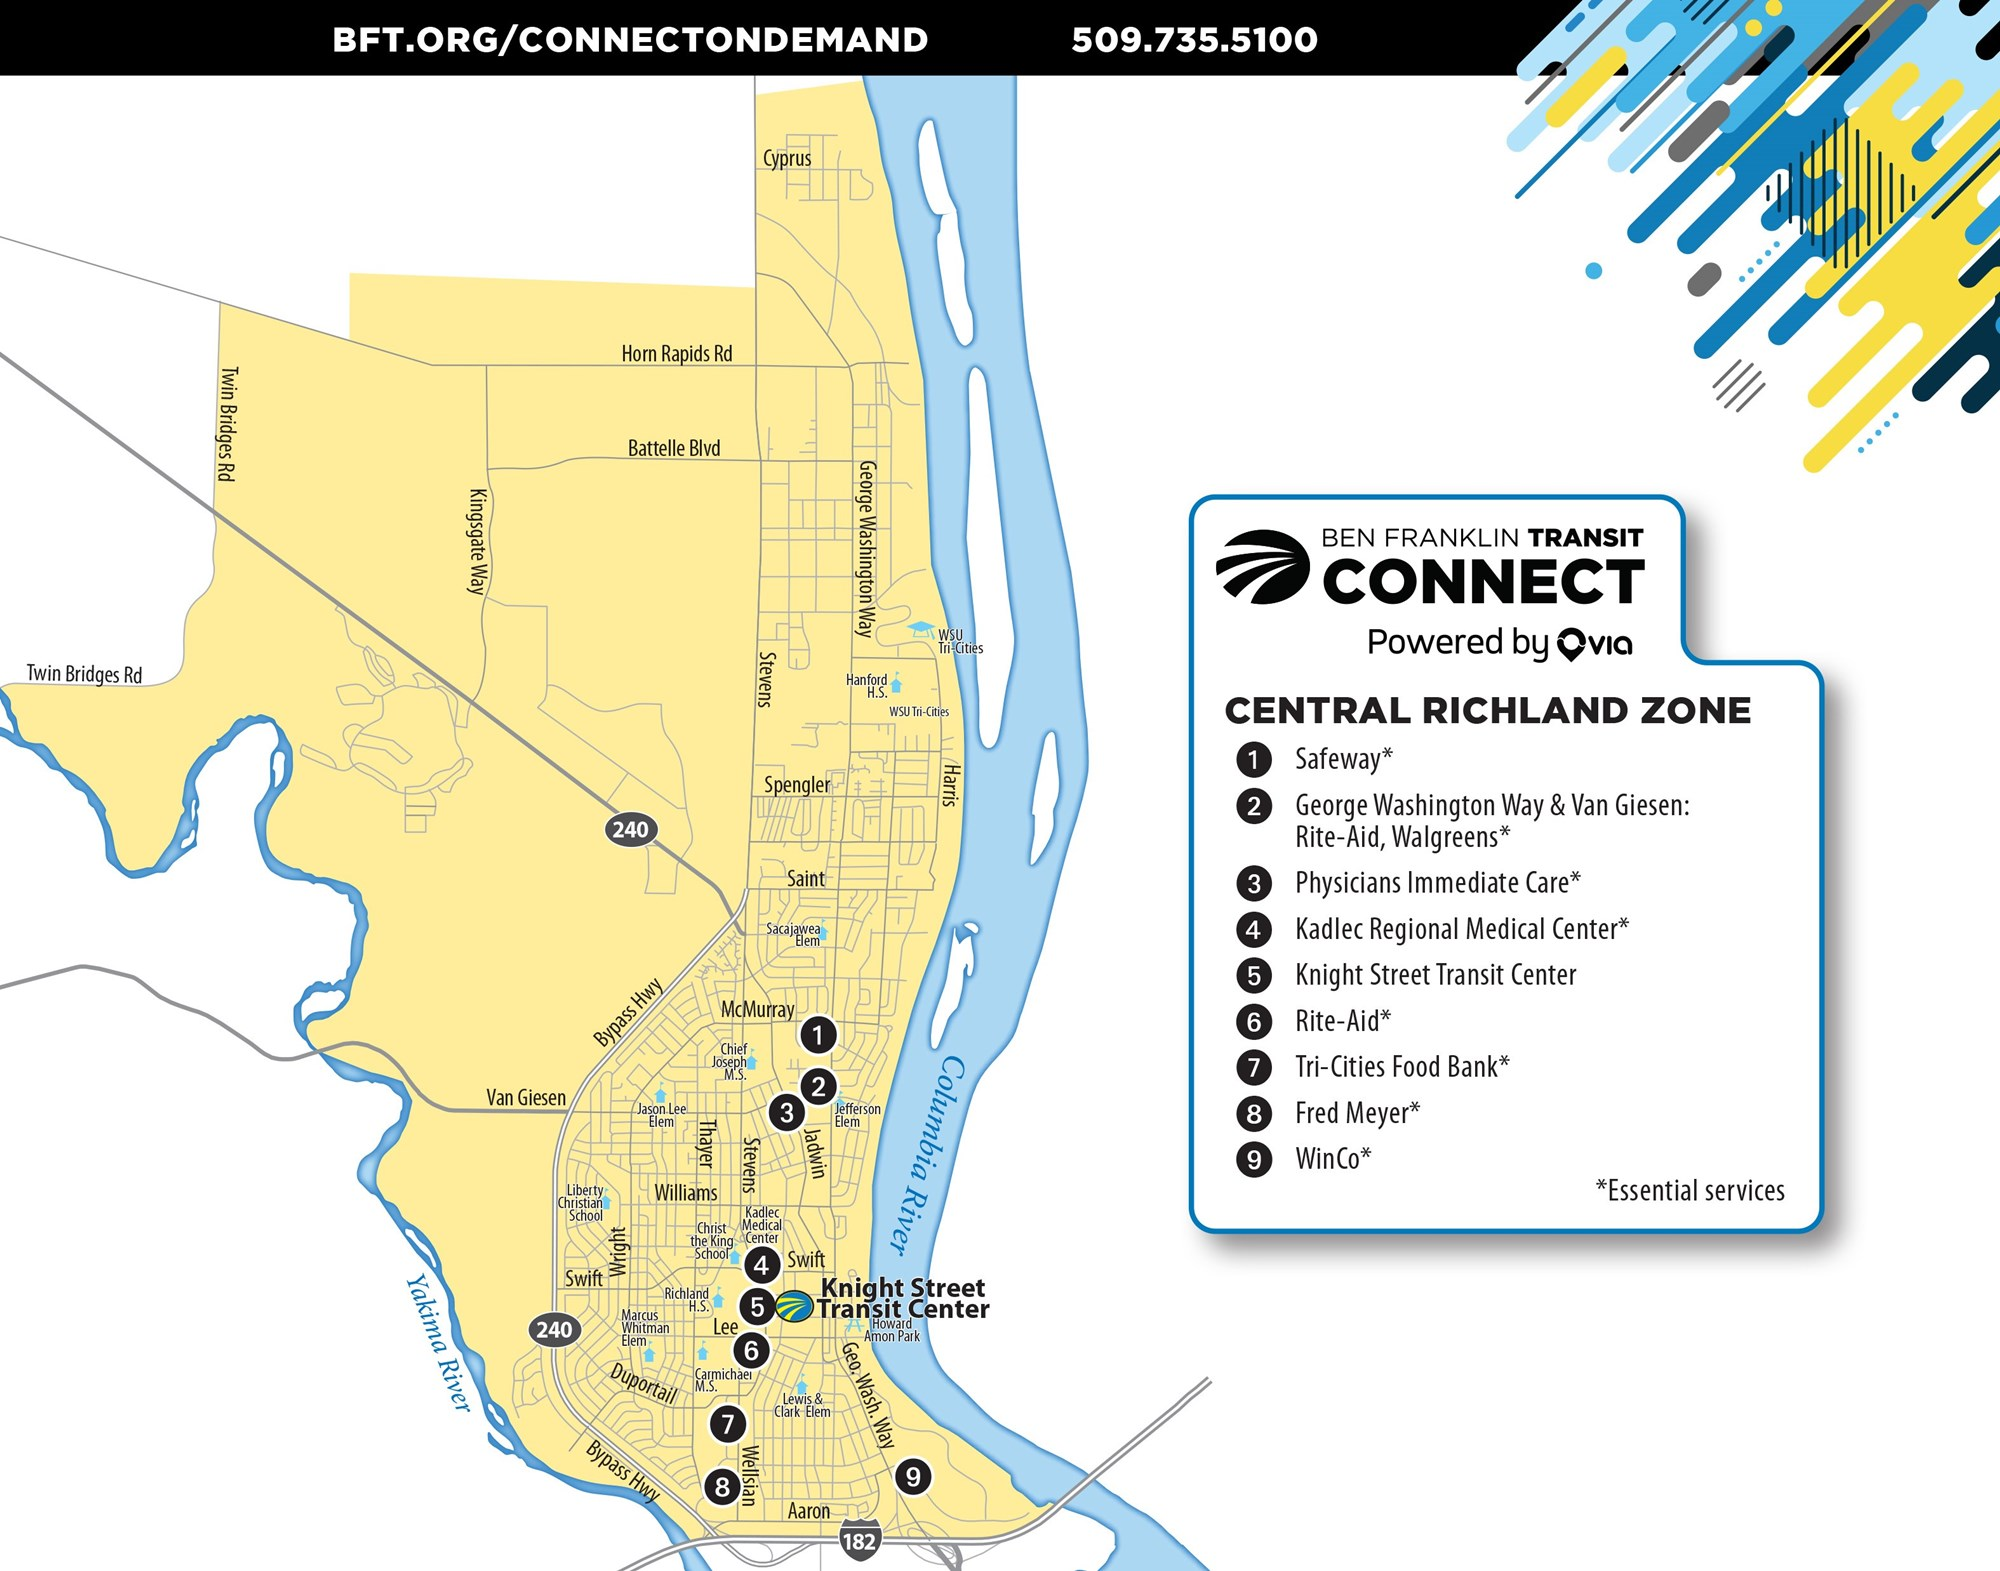 BFT_CONNECT_Central_Richland